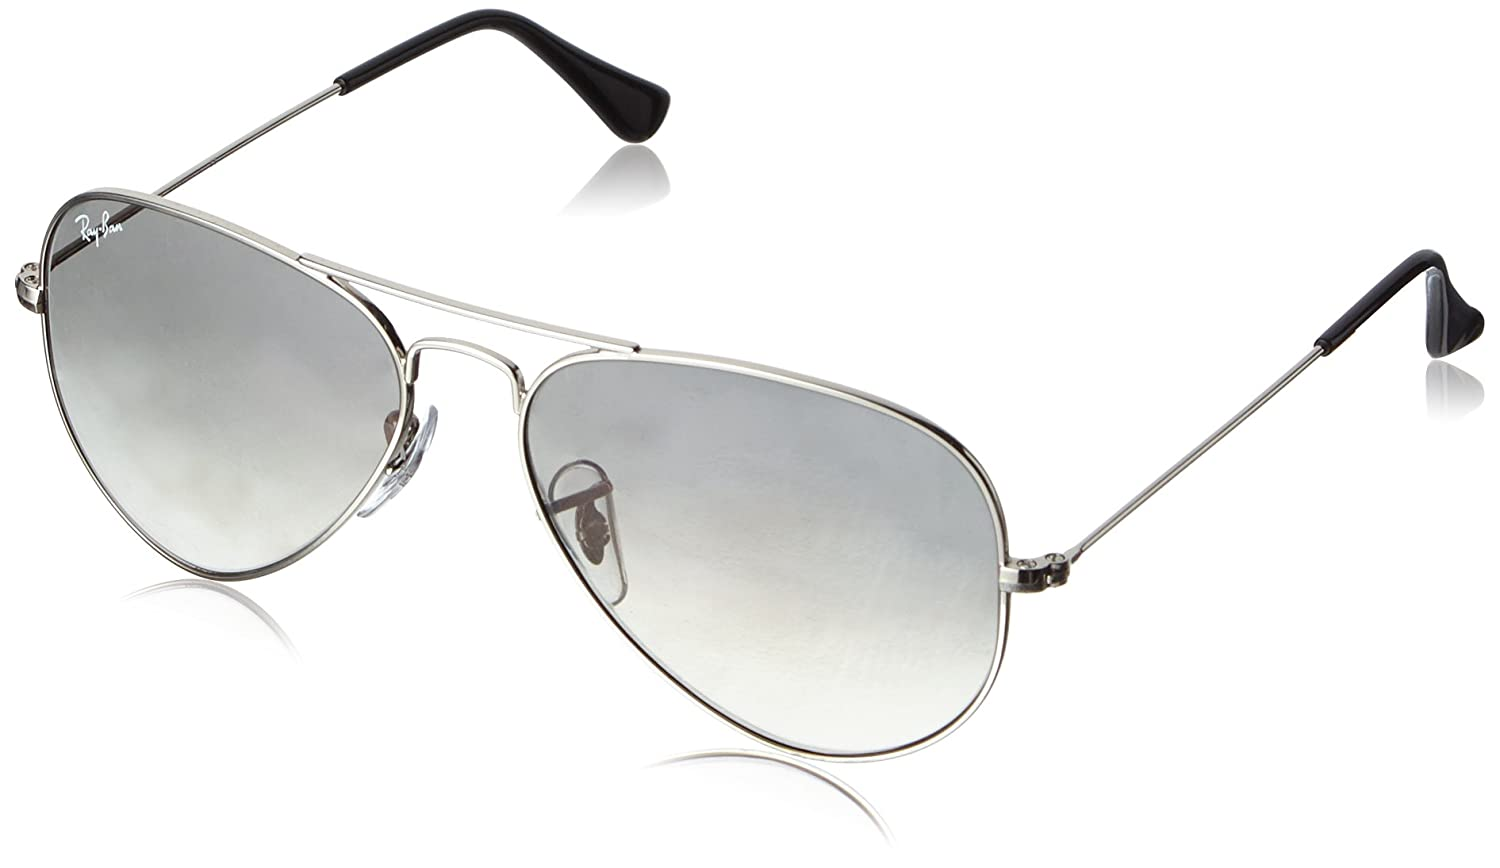 Amazon.com: Ray-Ban 0RB3025 Aviator Metal Non-Polarized Sunglasses, Silver/ Crystal Grey Mirror, 58mm: Ray-Ban: Clothing